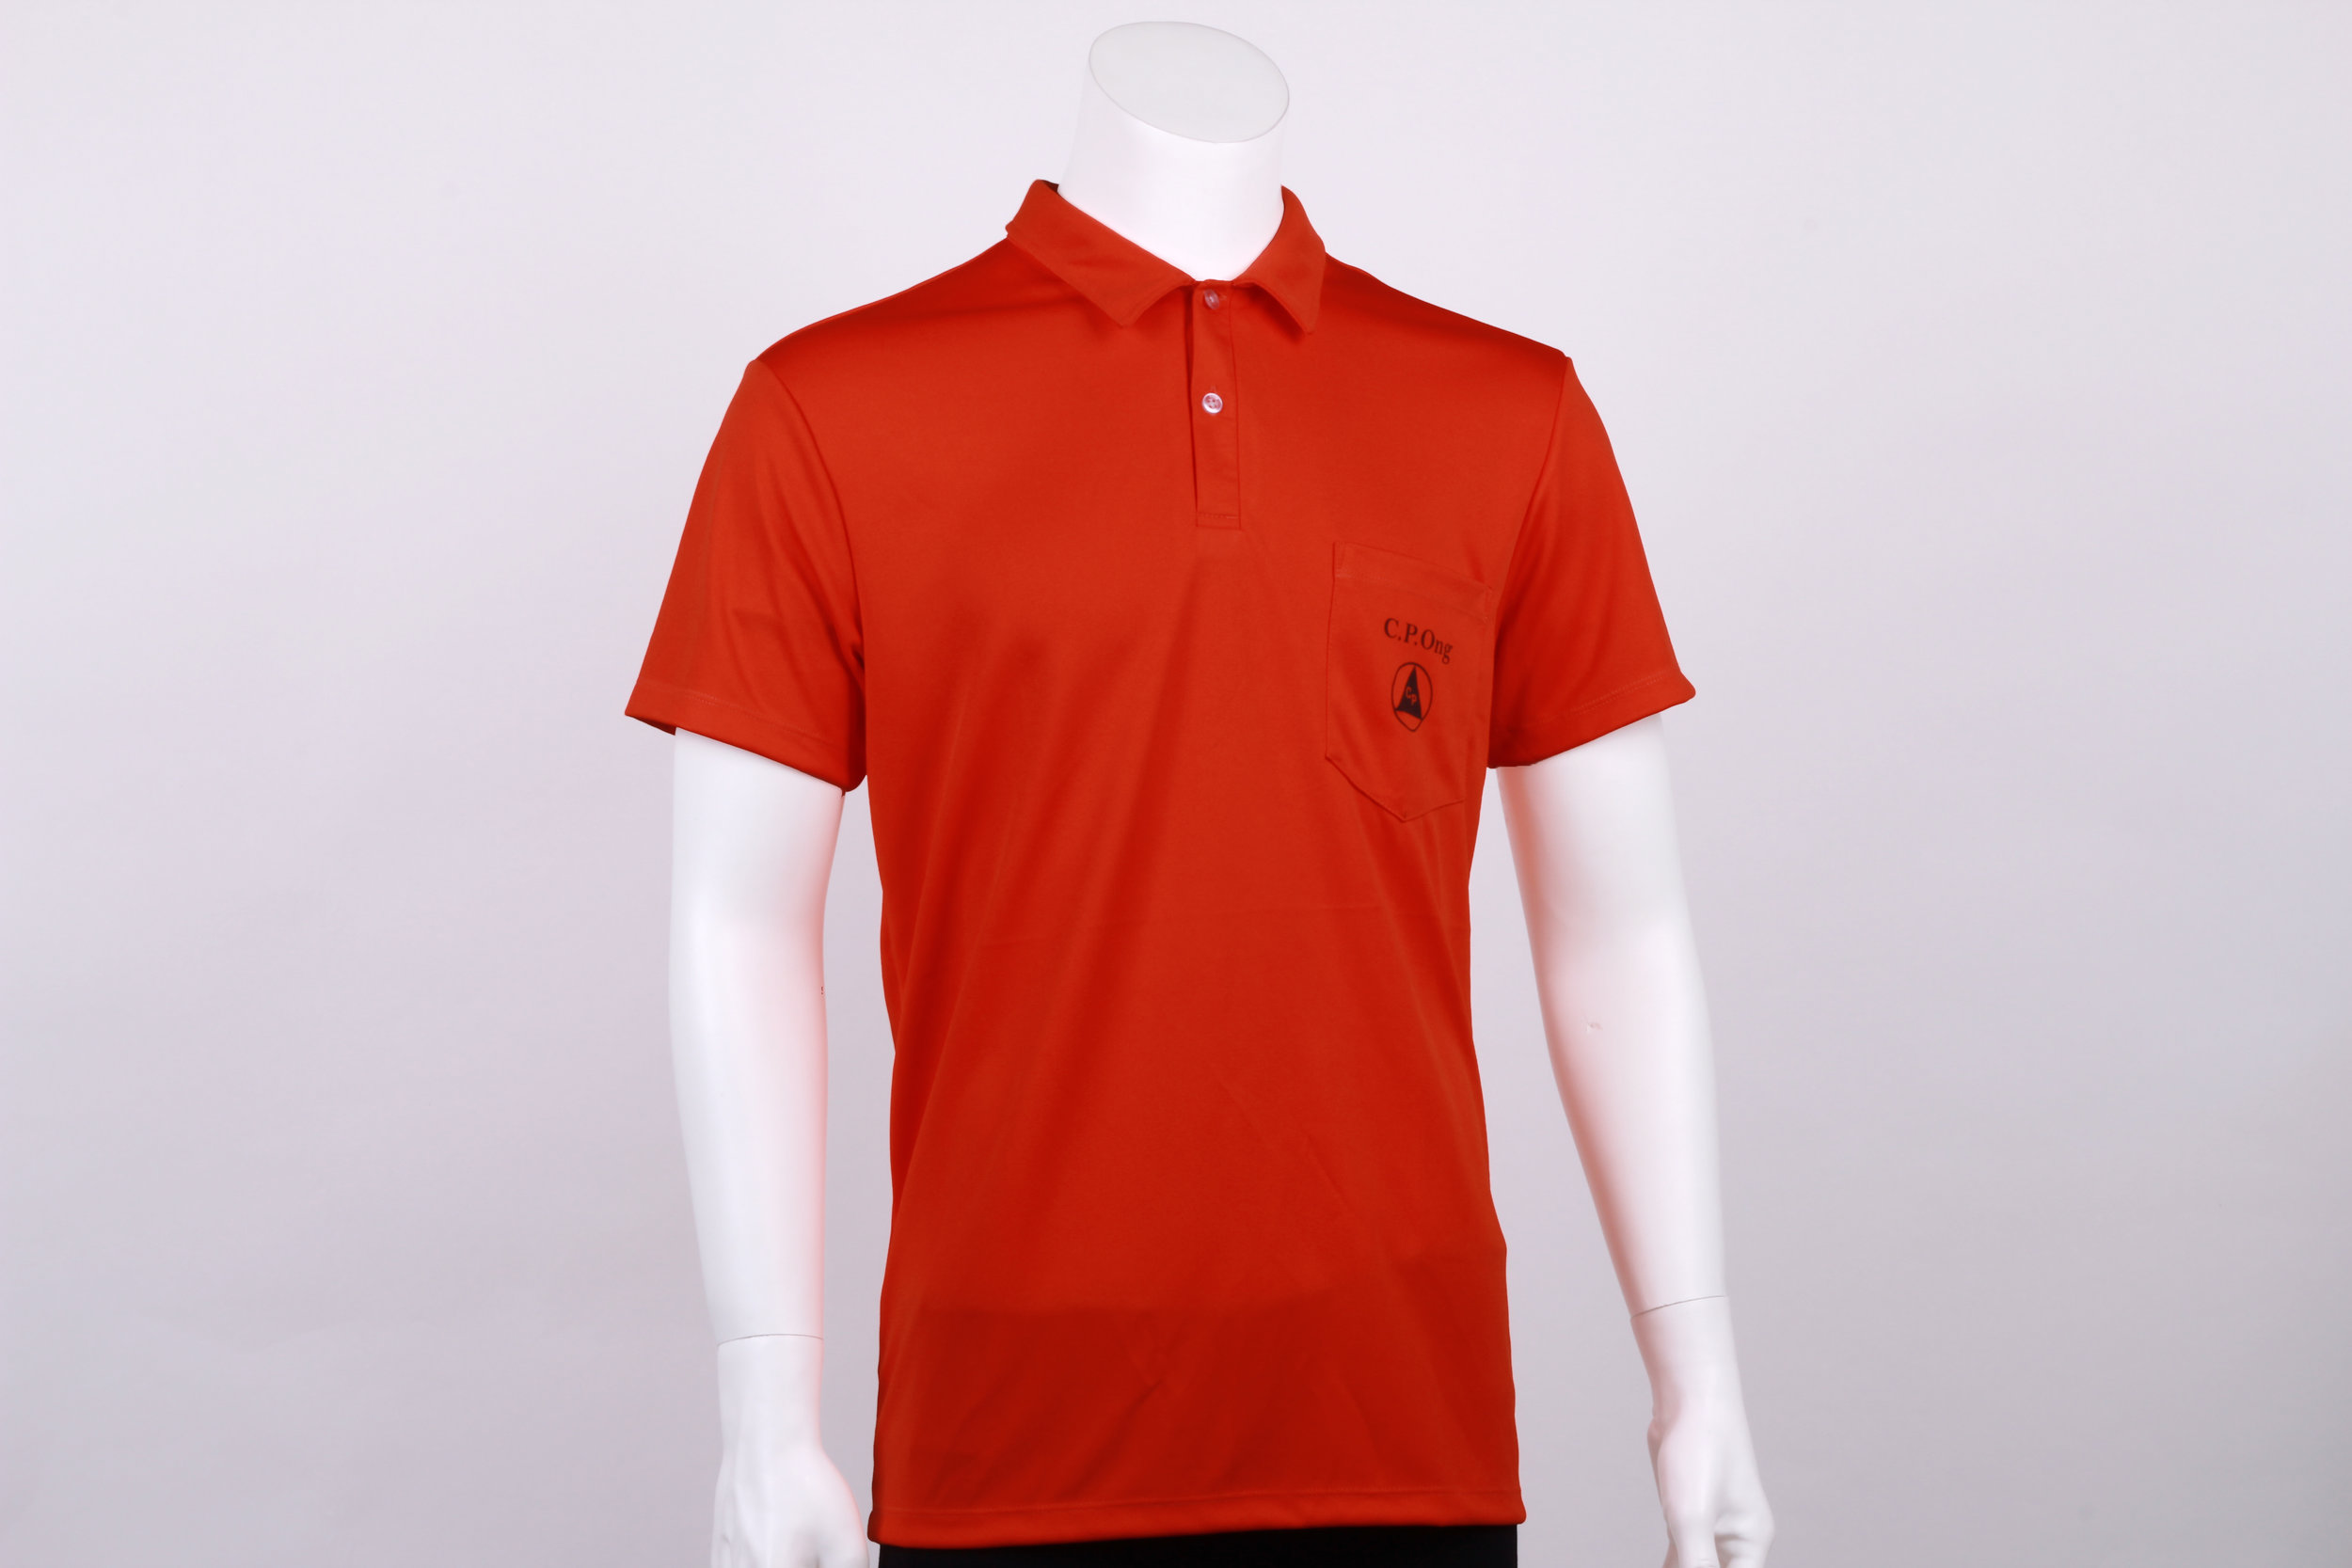 Standard Polo Tee with pocket